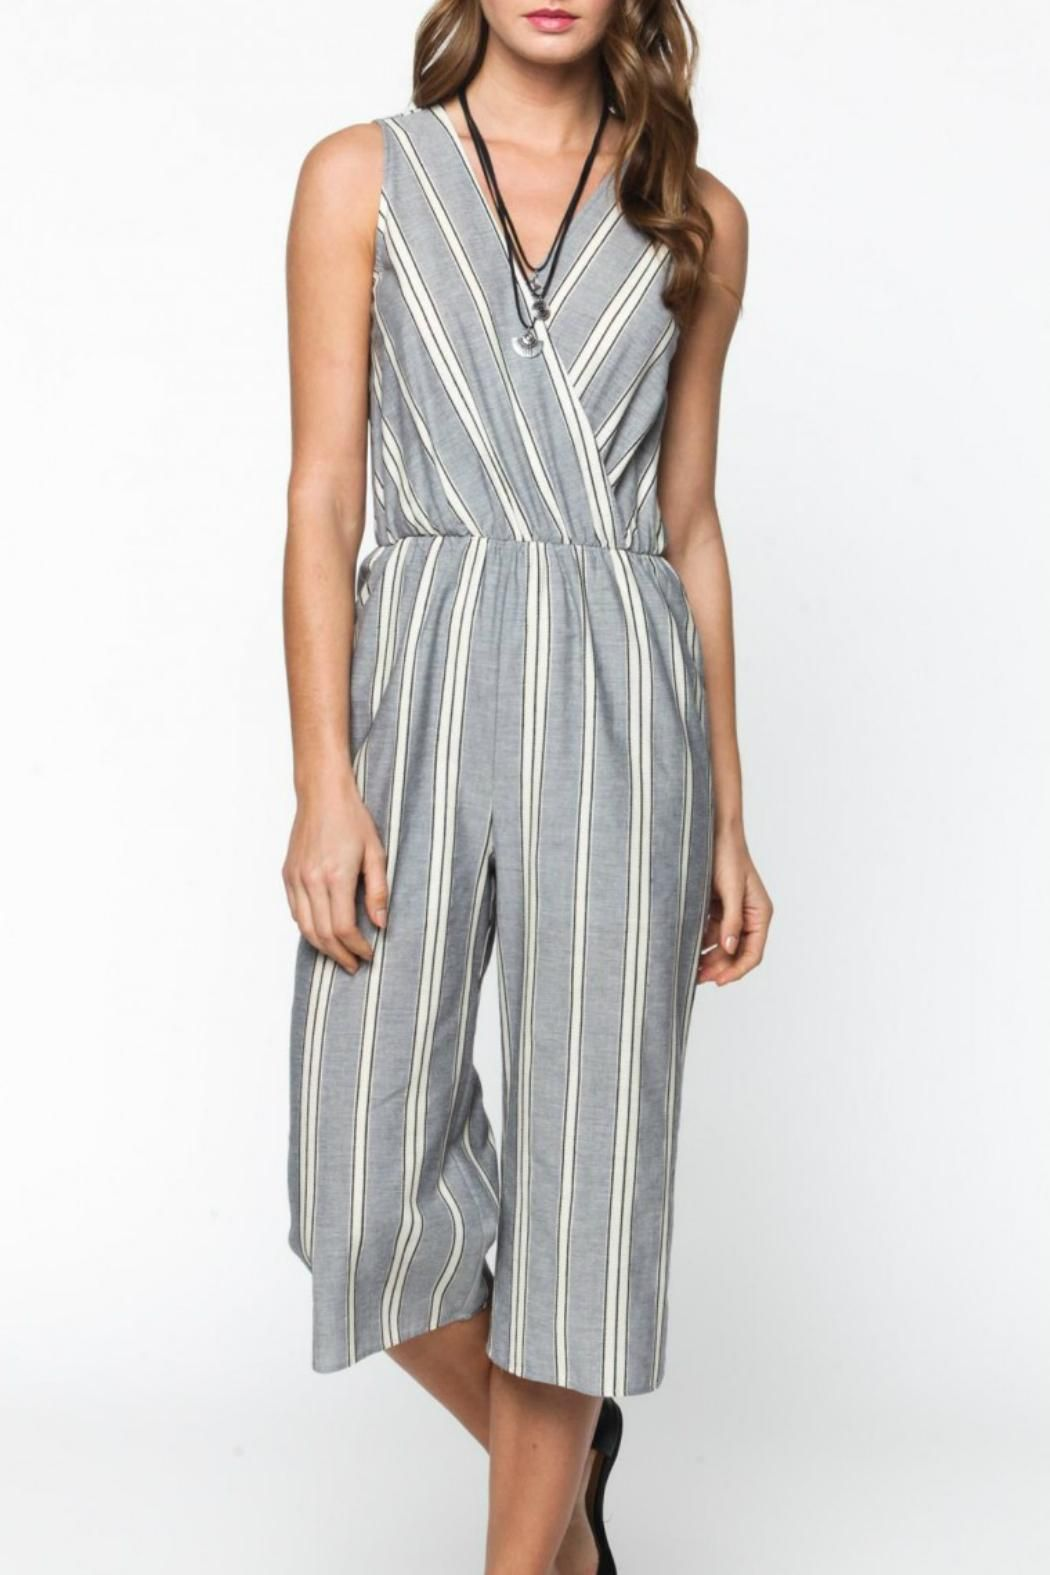 c436ec2cd48 Striped mid--calf length jumpsuit with v neck and back. Striped Capri  Jumpsuit by Everly. Clothing - Jumpsuits   Rompers - Jumpsuits Texas